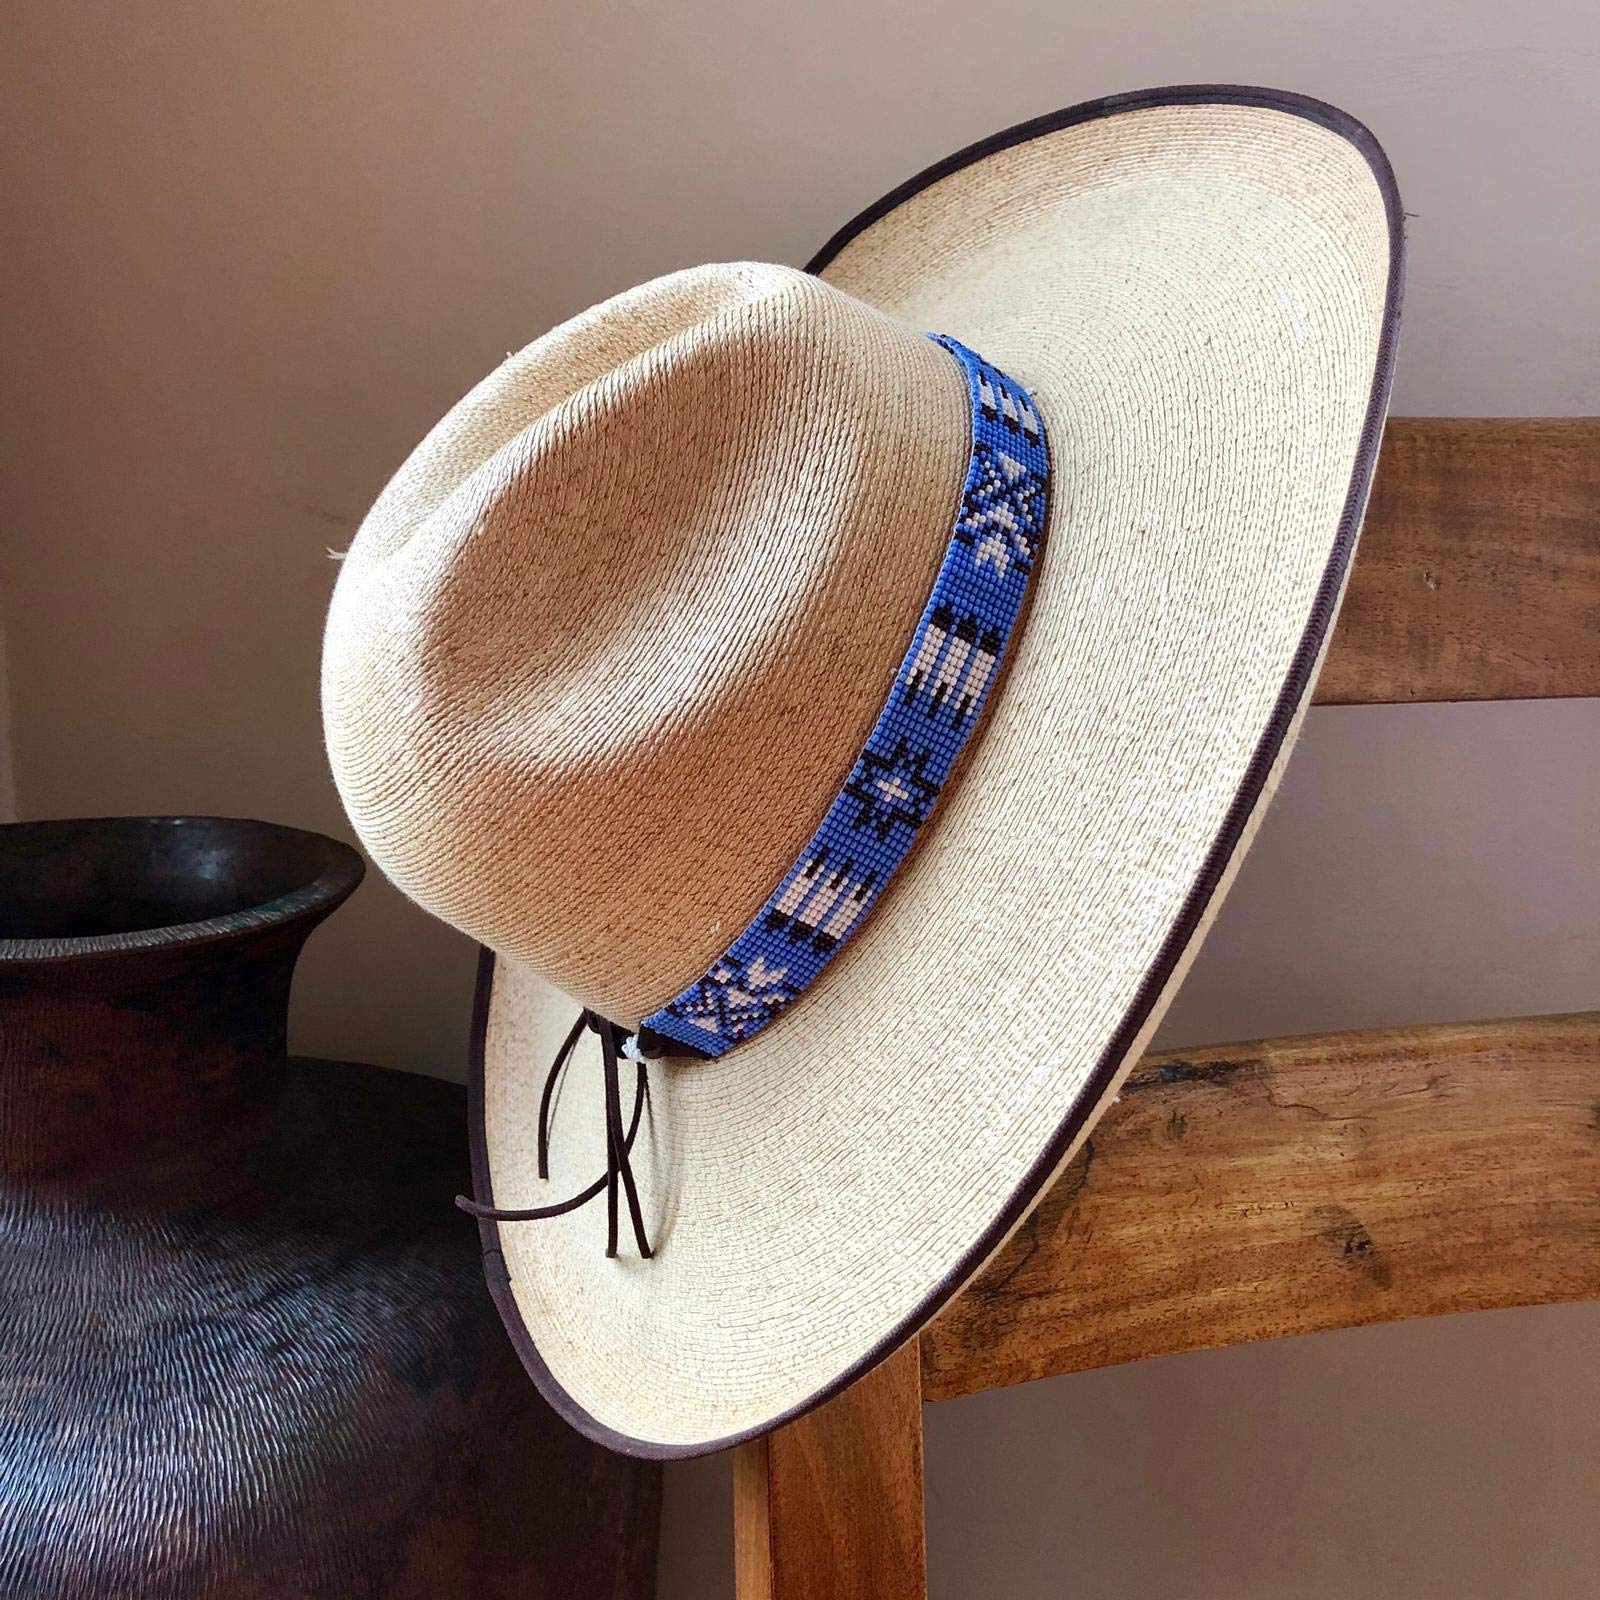 Mayan Arts Hat Band, Hatbands for Men and Women, Leather Straps, Cowboy Beaded Bands, White, Blue Paisley, Handmade in Guatemala 7/8'' X 21'' by Mayan Arts (Image #3)